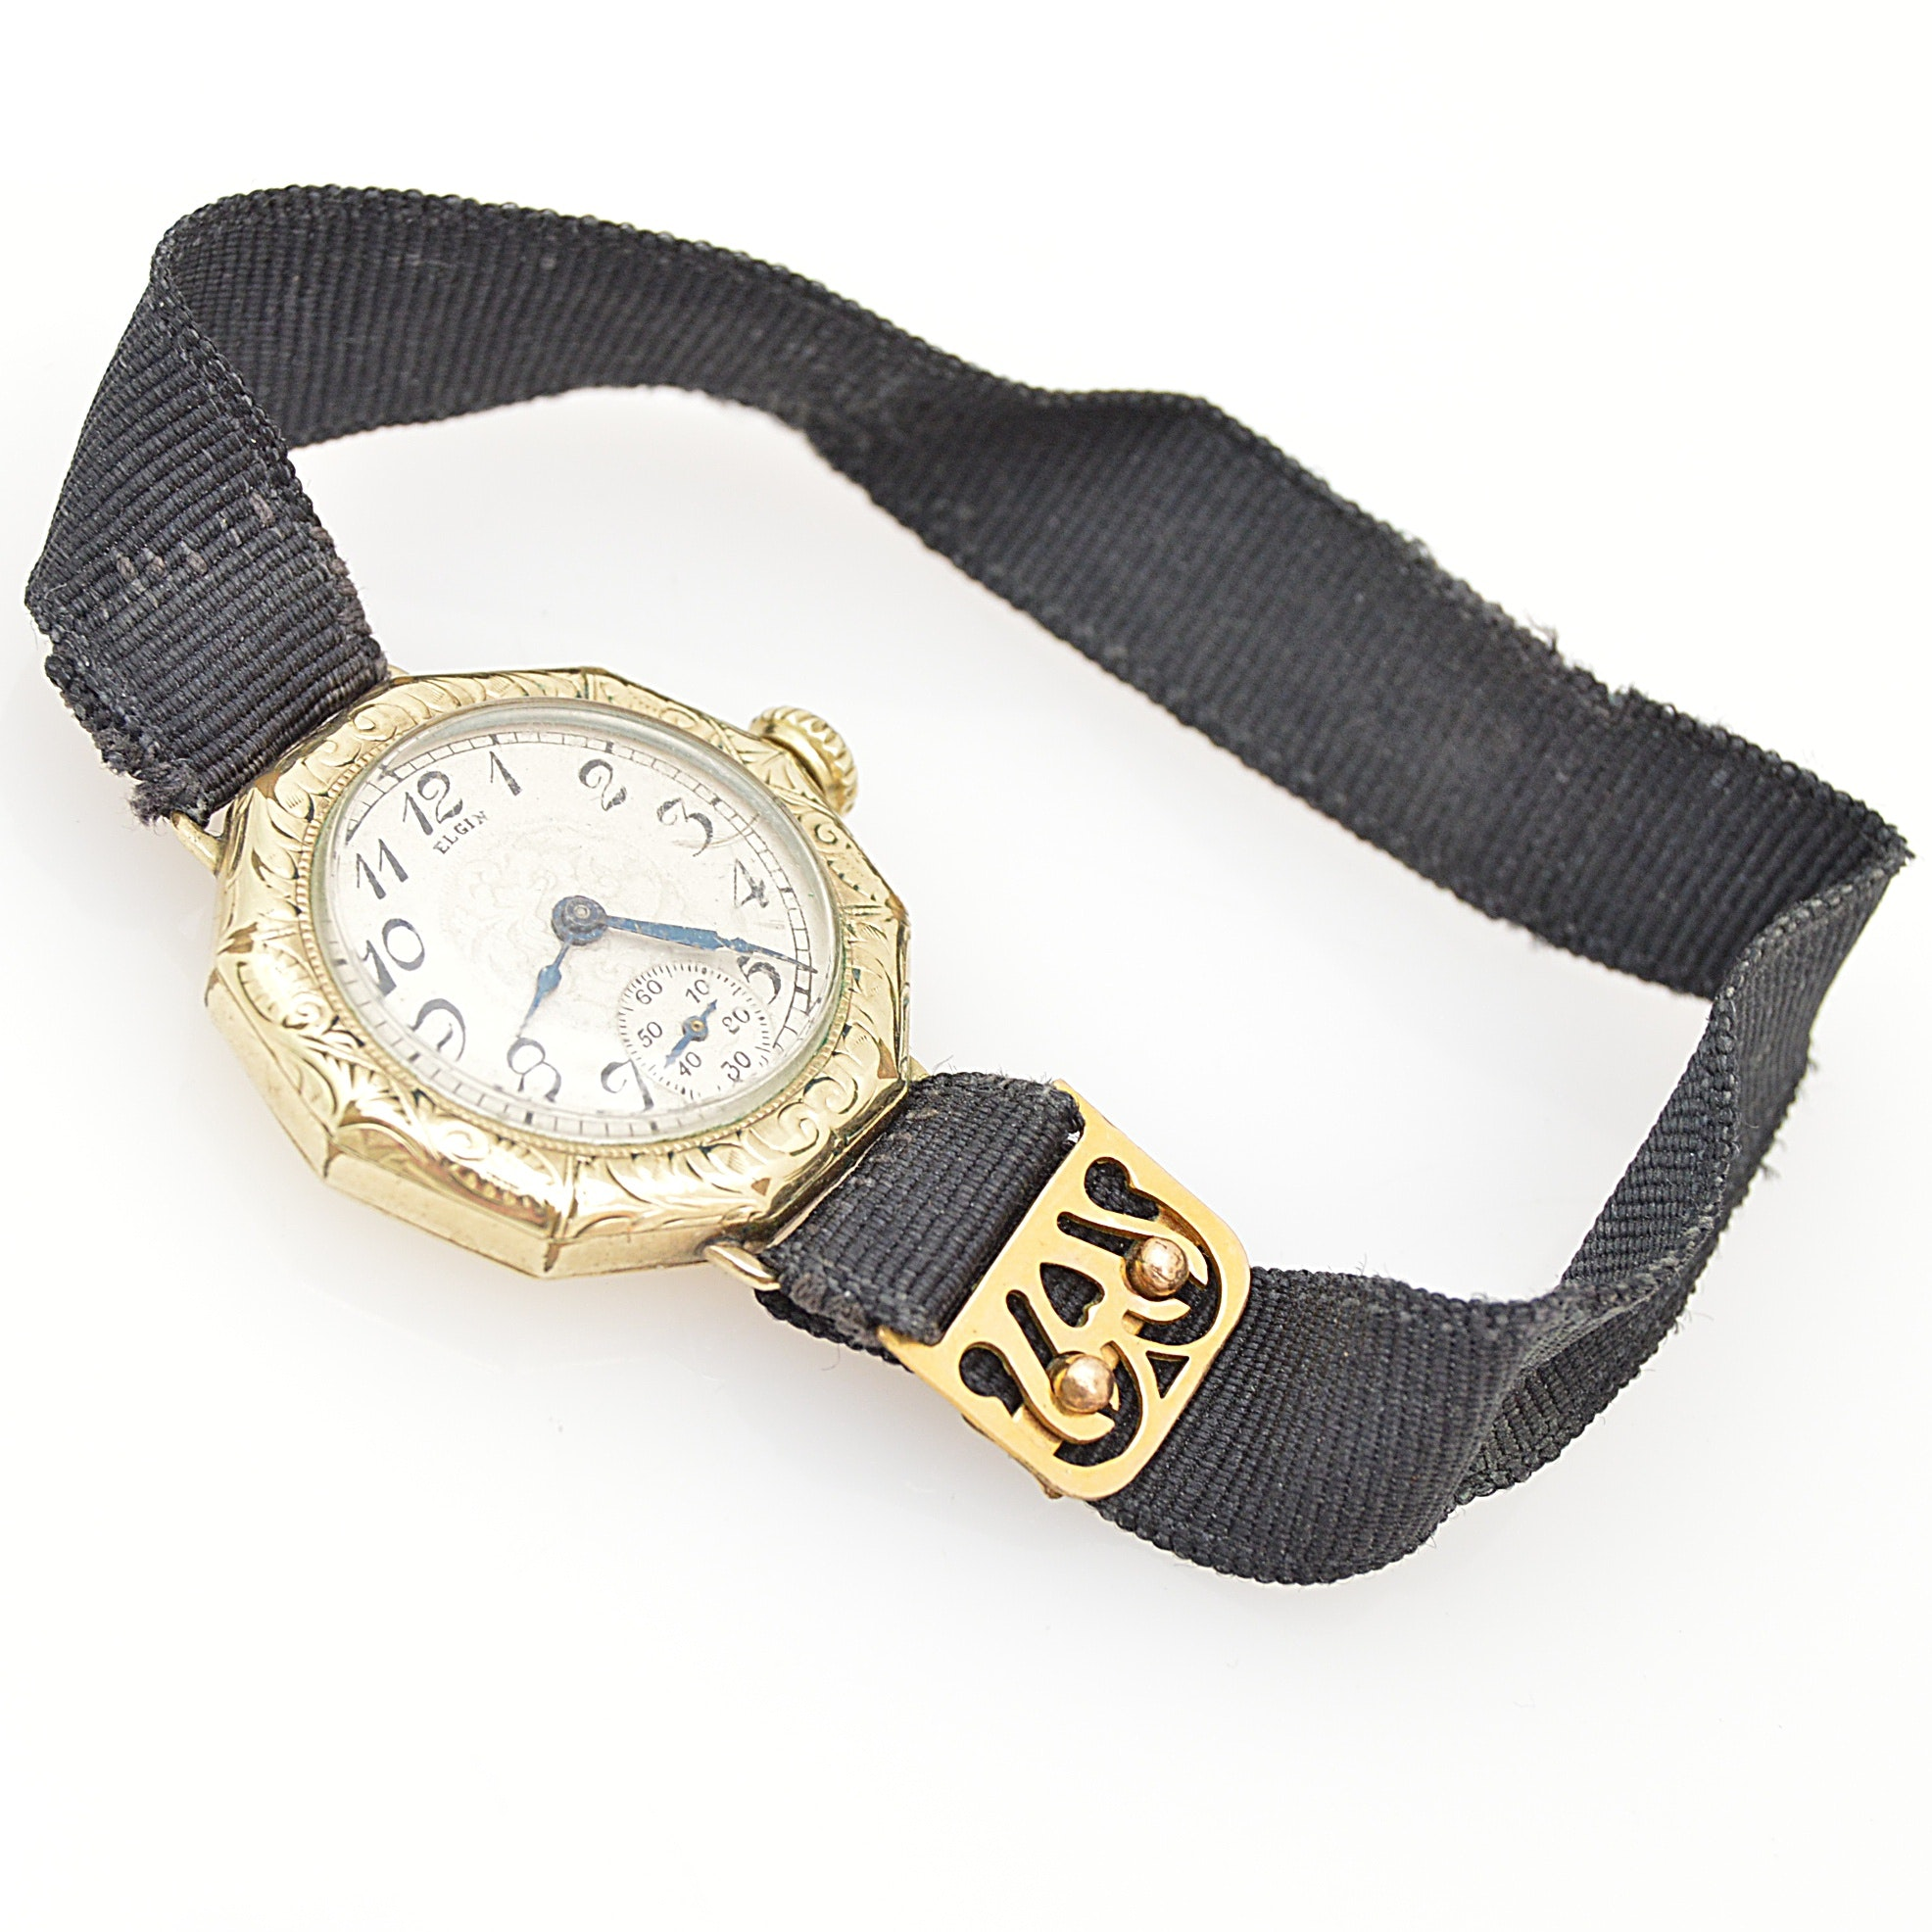 Circa 1923 Elgin Gold-Filled Wristwatch with Ribbon Band